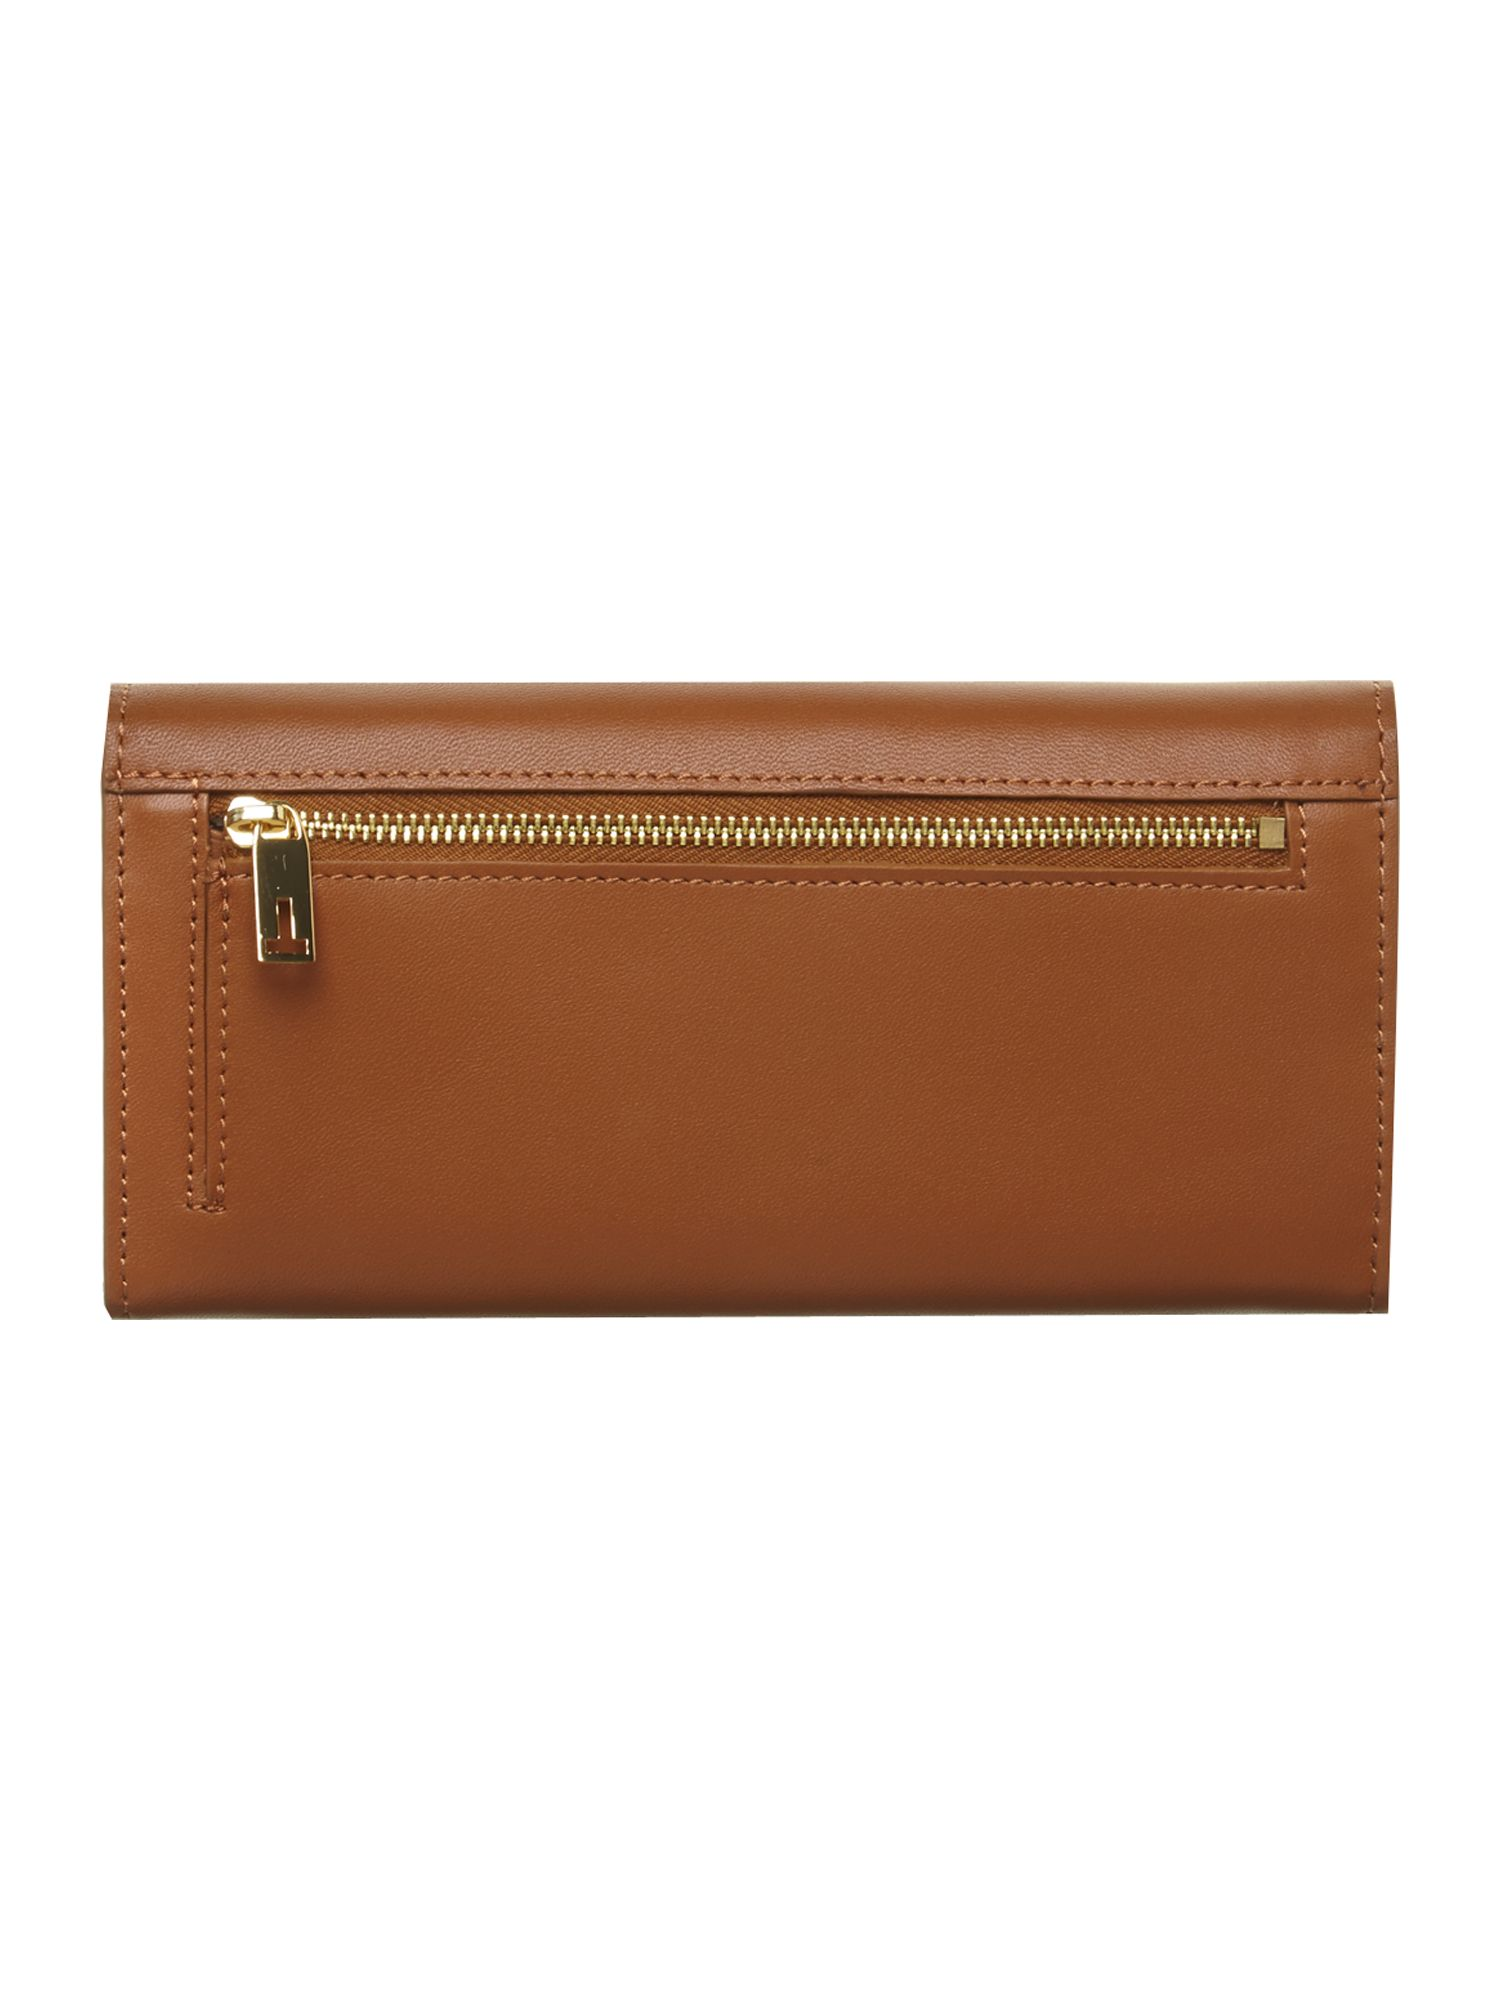 Tan bow leather flapover purse